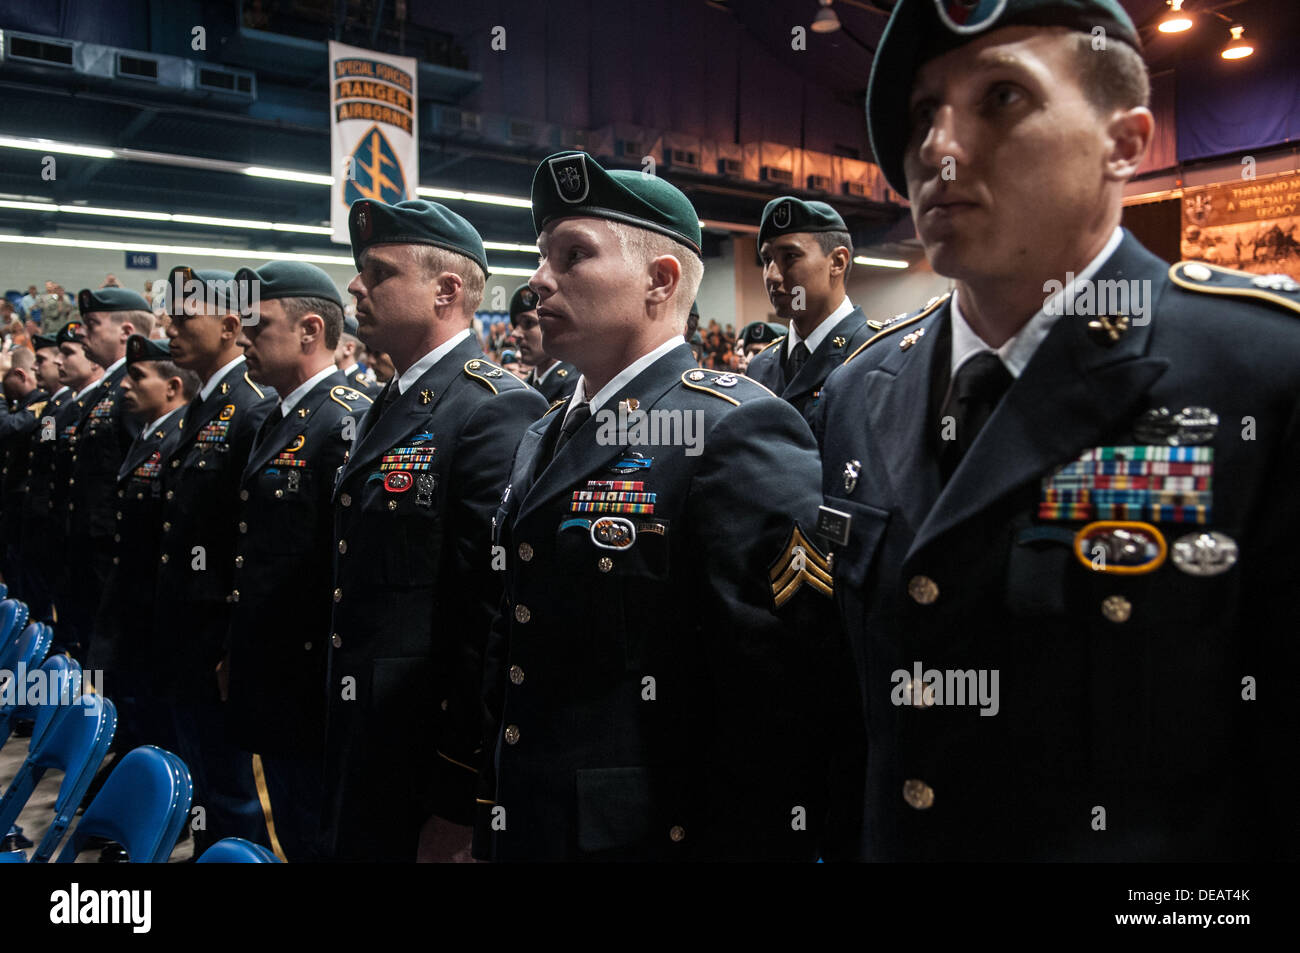 Army Green Berets Immagini   Army Green Berets Fotos Stock - Alamy 1bc47ee4d4da